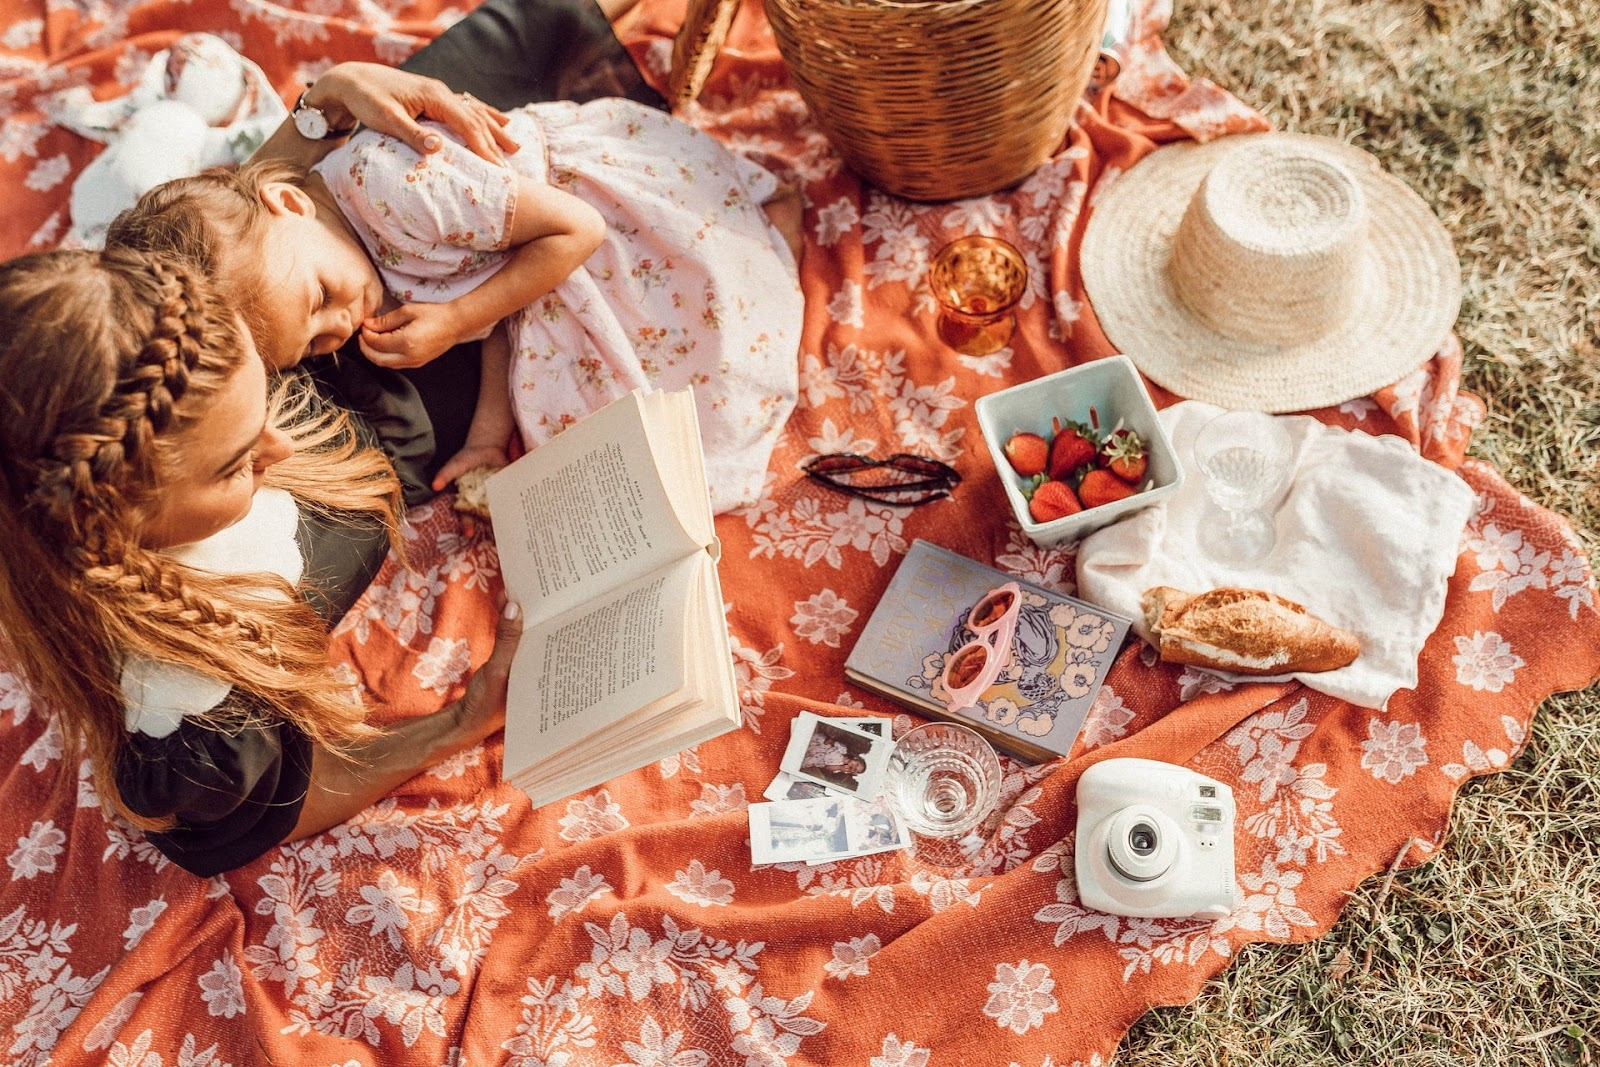 activities for people of all ages, mom and daughter reading a book when on a picnic